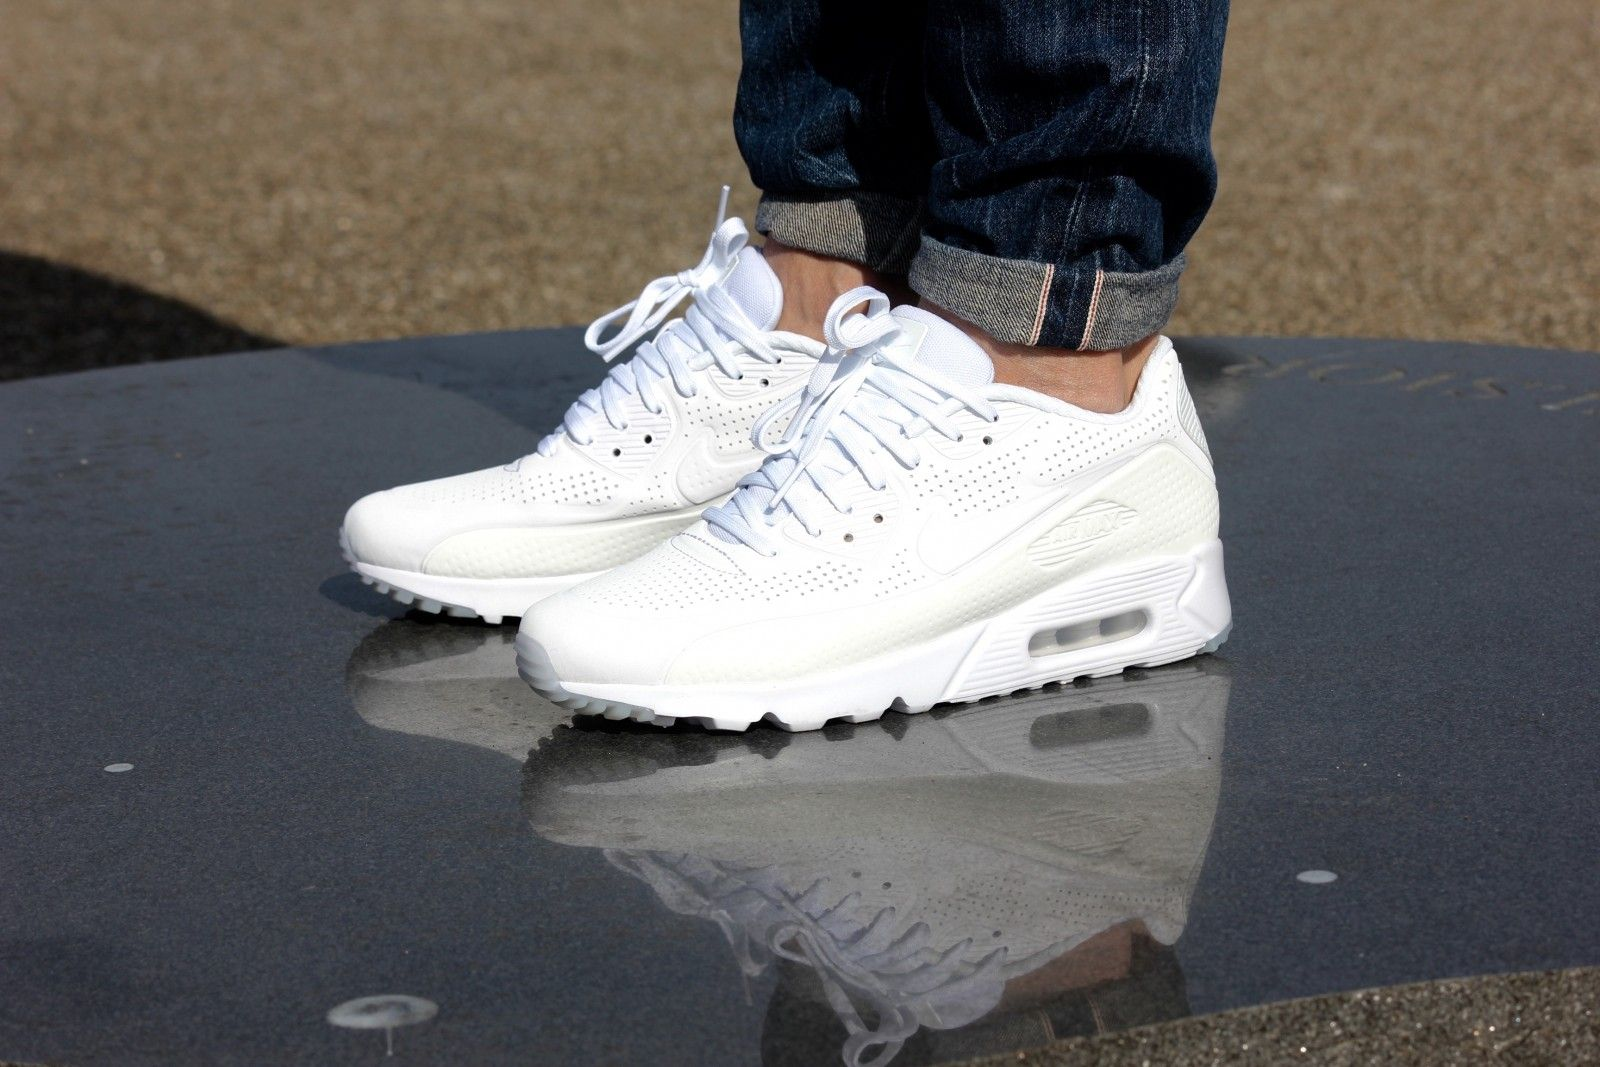 384e03bf Nike Air Max 90 Ultra Moire Triple White - 819477-111 | Sneakers n ...